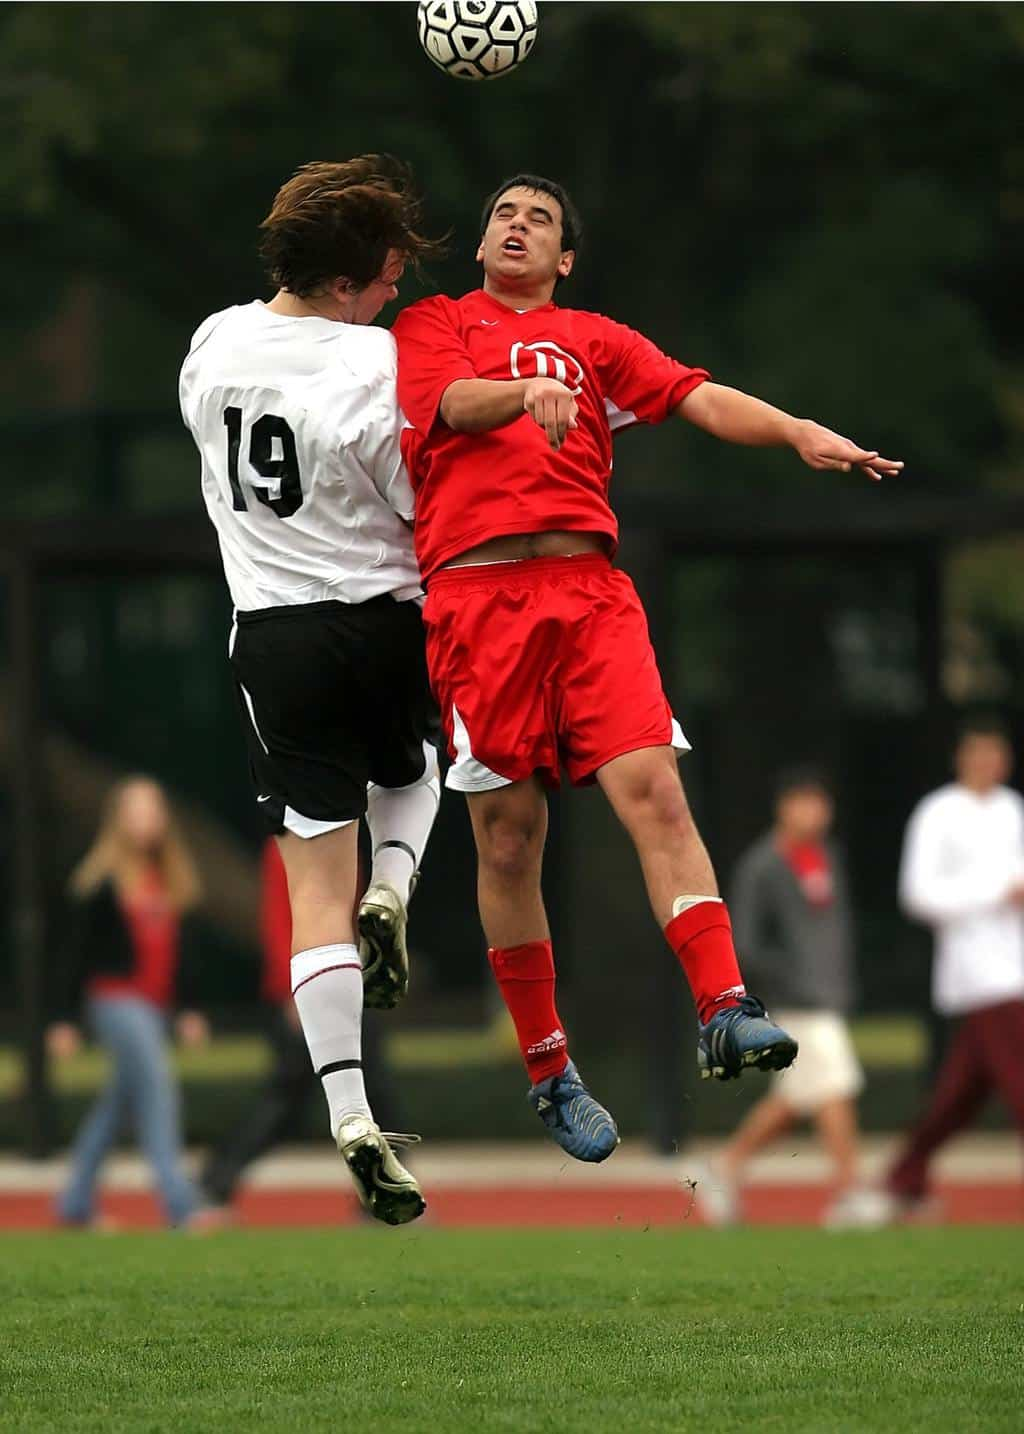 Two soccer players bumping into each other midair